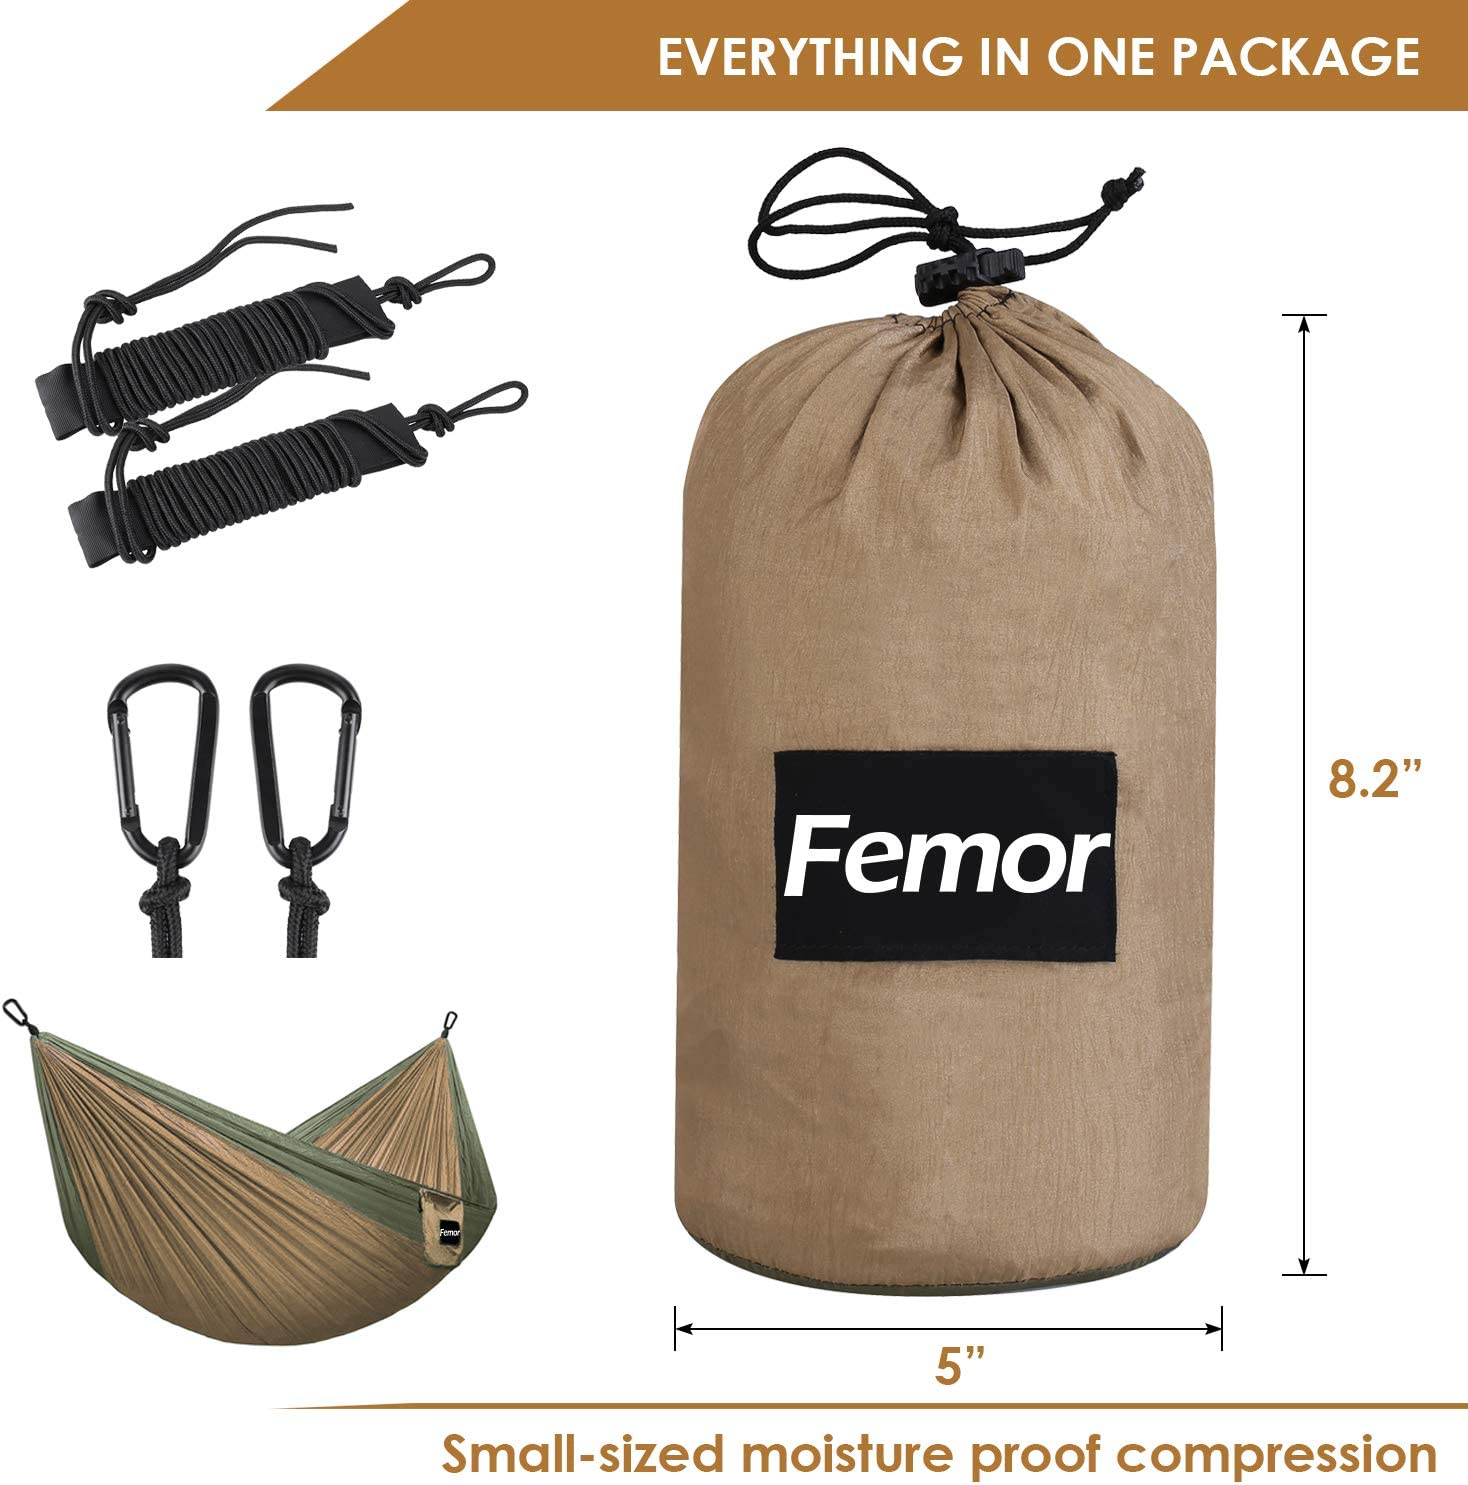 Support 441lbs for Yard Backpacking Hiking Portable Lightweight Nylon Parachute Hammok with Tree Ropes and Carabiners femor Outflitters Double Hammock Camping Travel Double Hammock Swing Support 441lbs for Ourdoor Backpacking Hiking